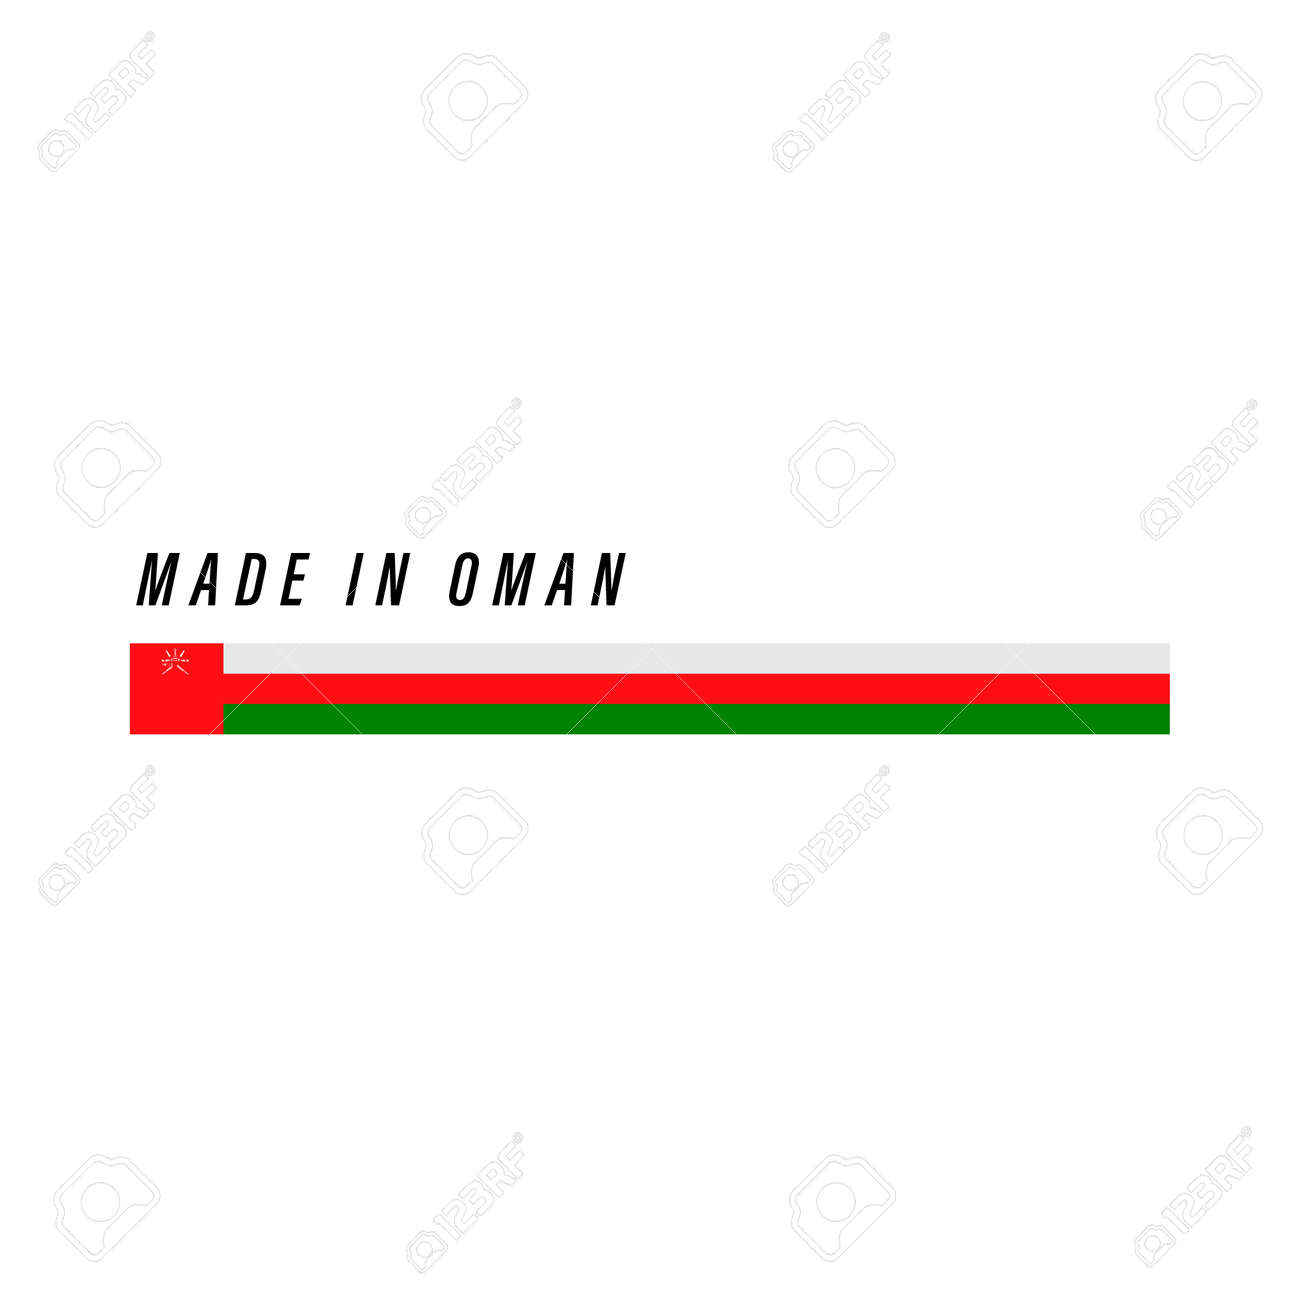 Made in Oman, badge or label with flag isolated on white background - 168929110